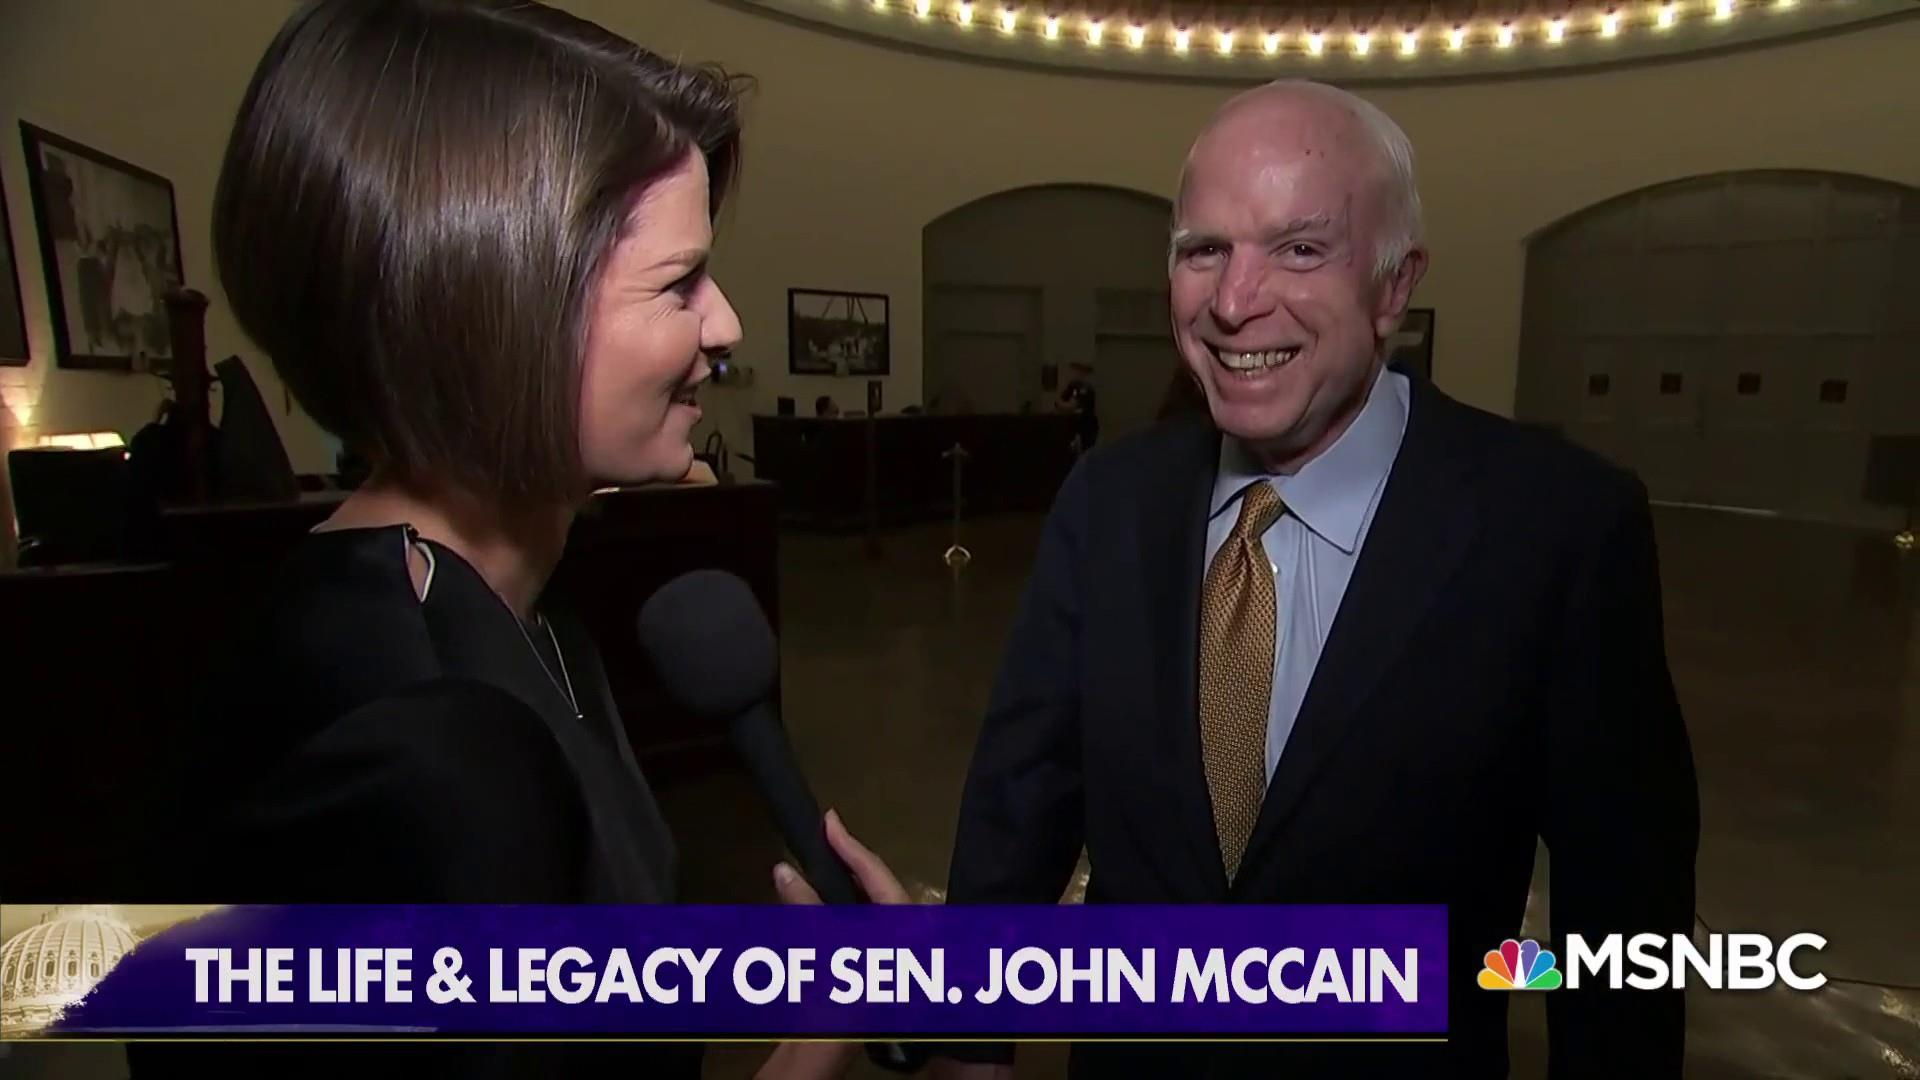 Kasie Hunt: Congress will not be the same without Sen. McCain